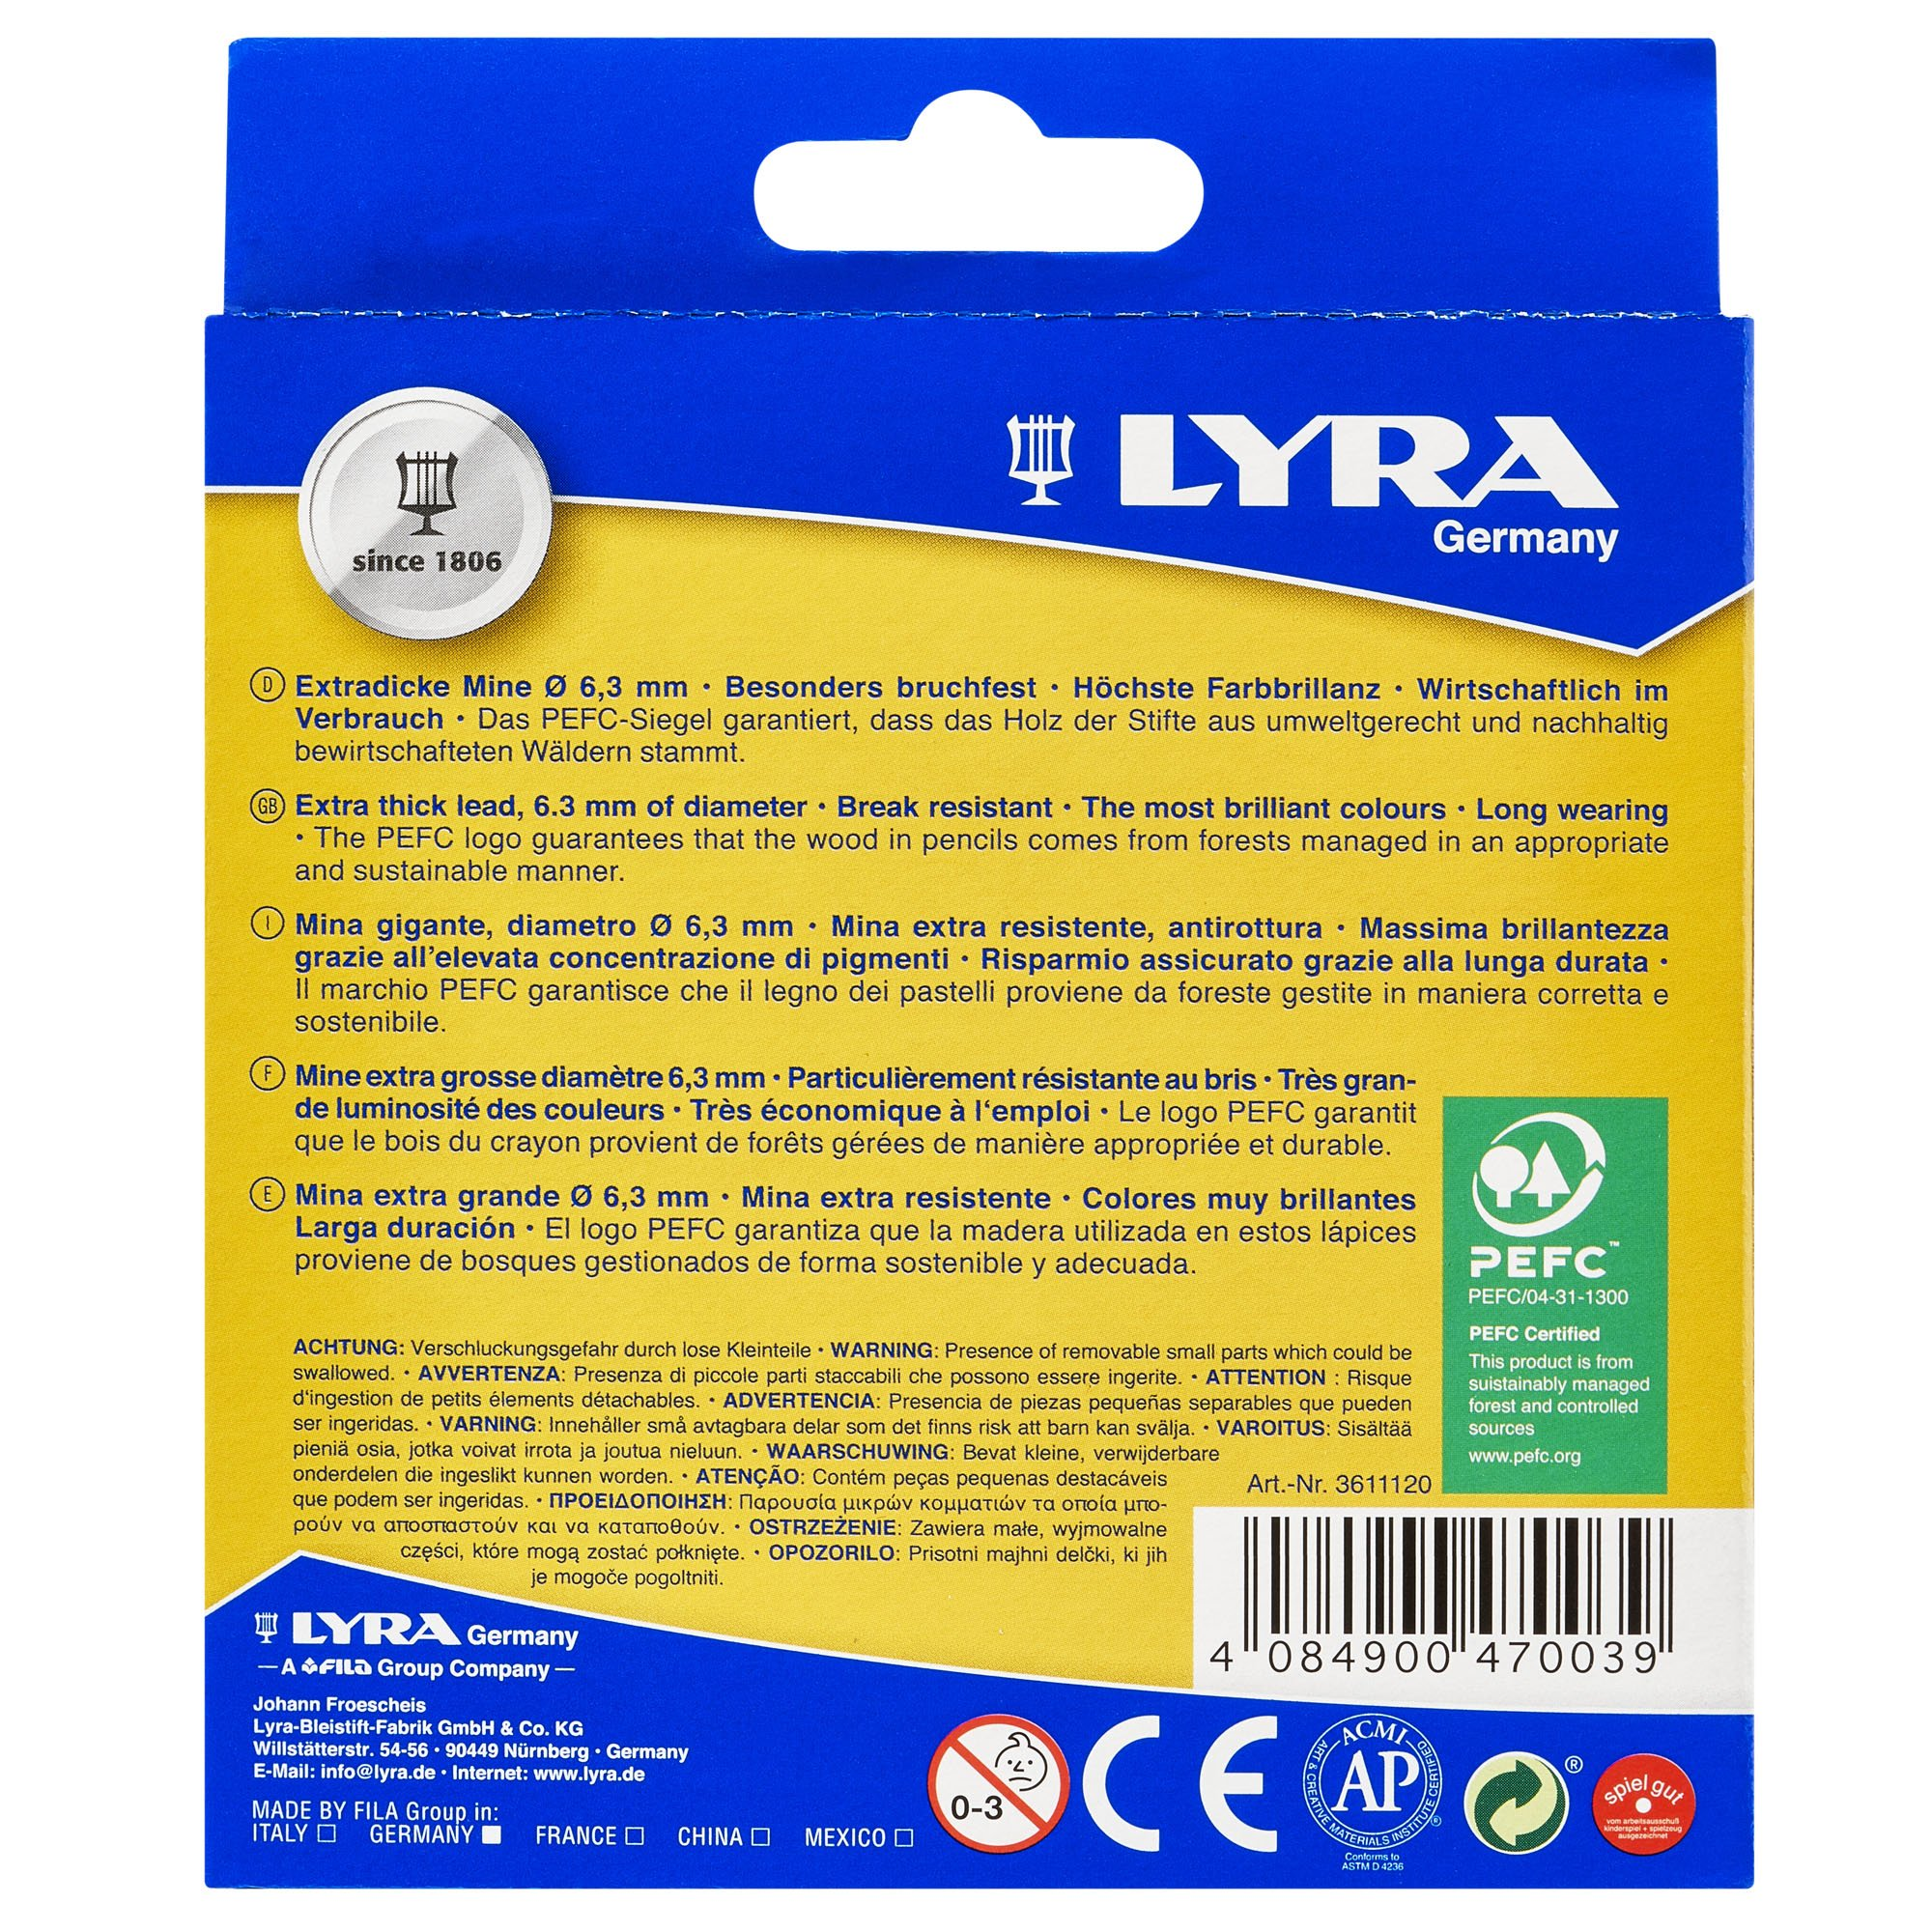 LYRA Ferby Giant Triangular Colored Pencils, Unlacquered, 6.25 Millimeter Cores, Assorted Colors, 12 Count (3611120) by Lyra (Image #3)